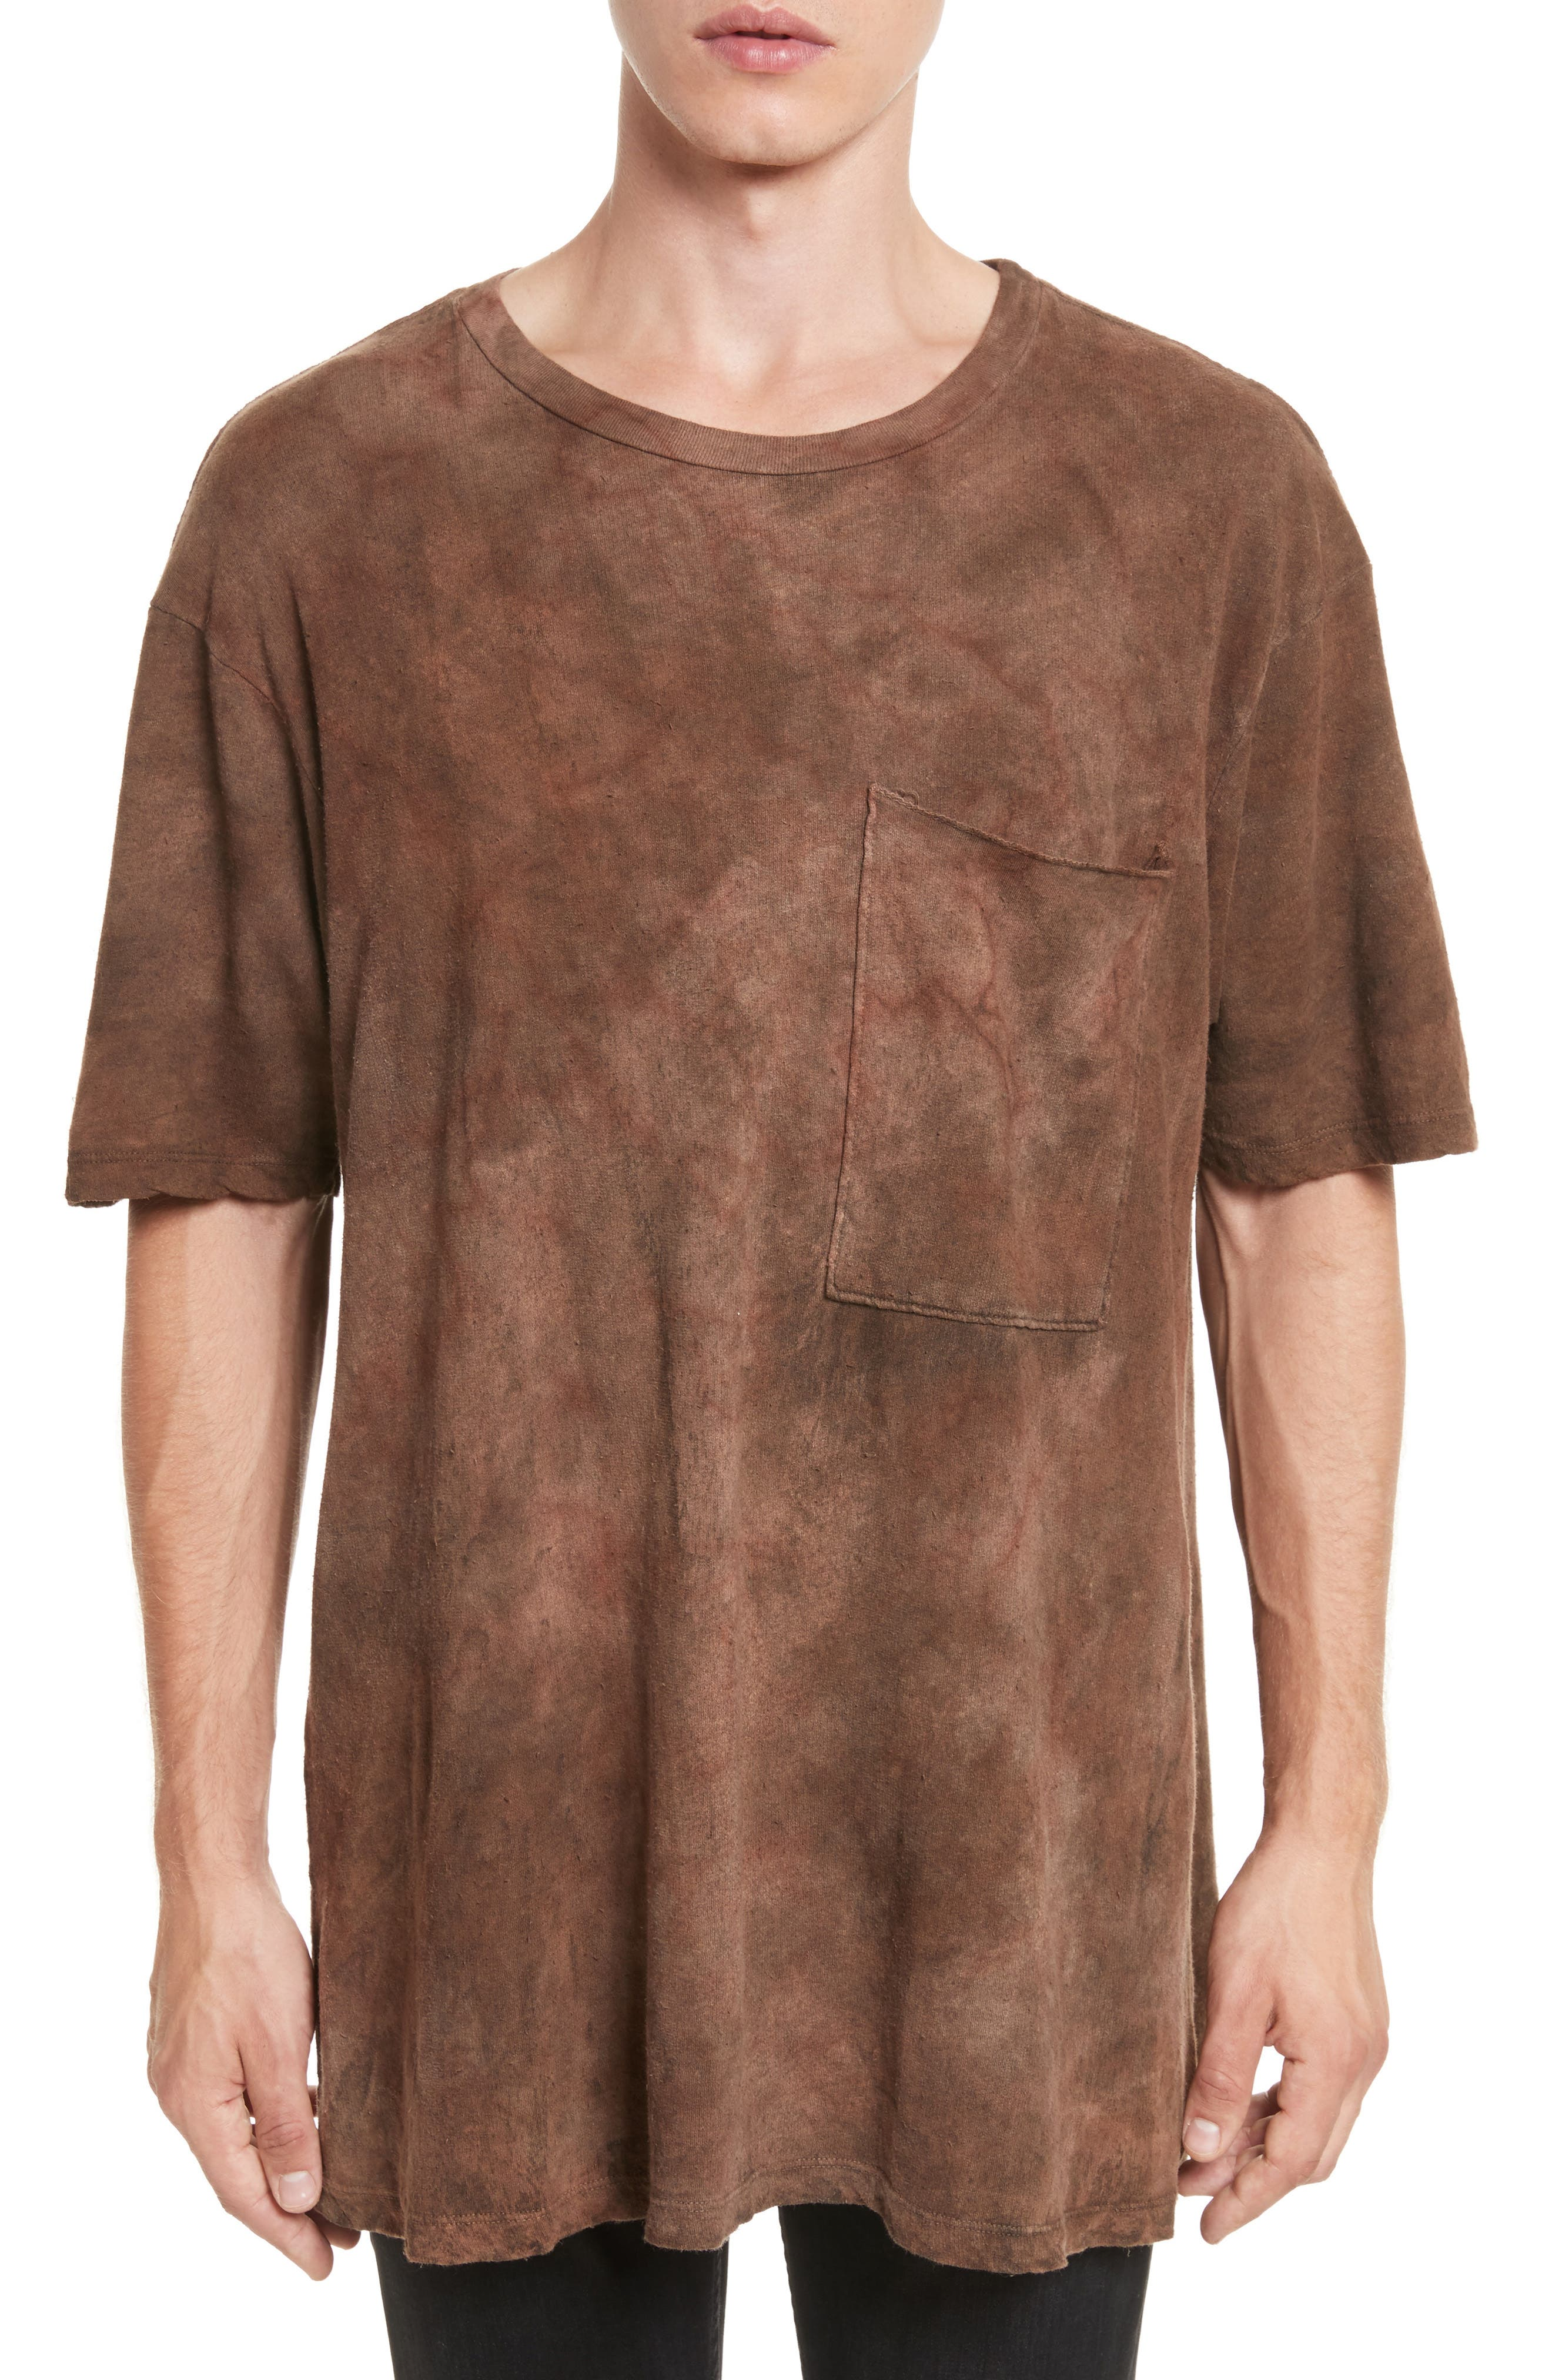 Granite Tie Dye Linen Blend T-Shirt,                             Main thumbnail 1, color,                             200